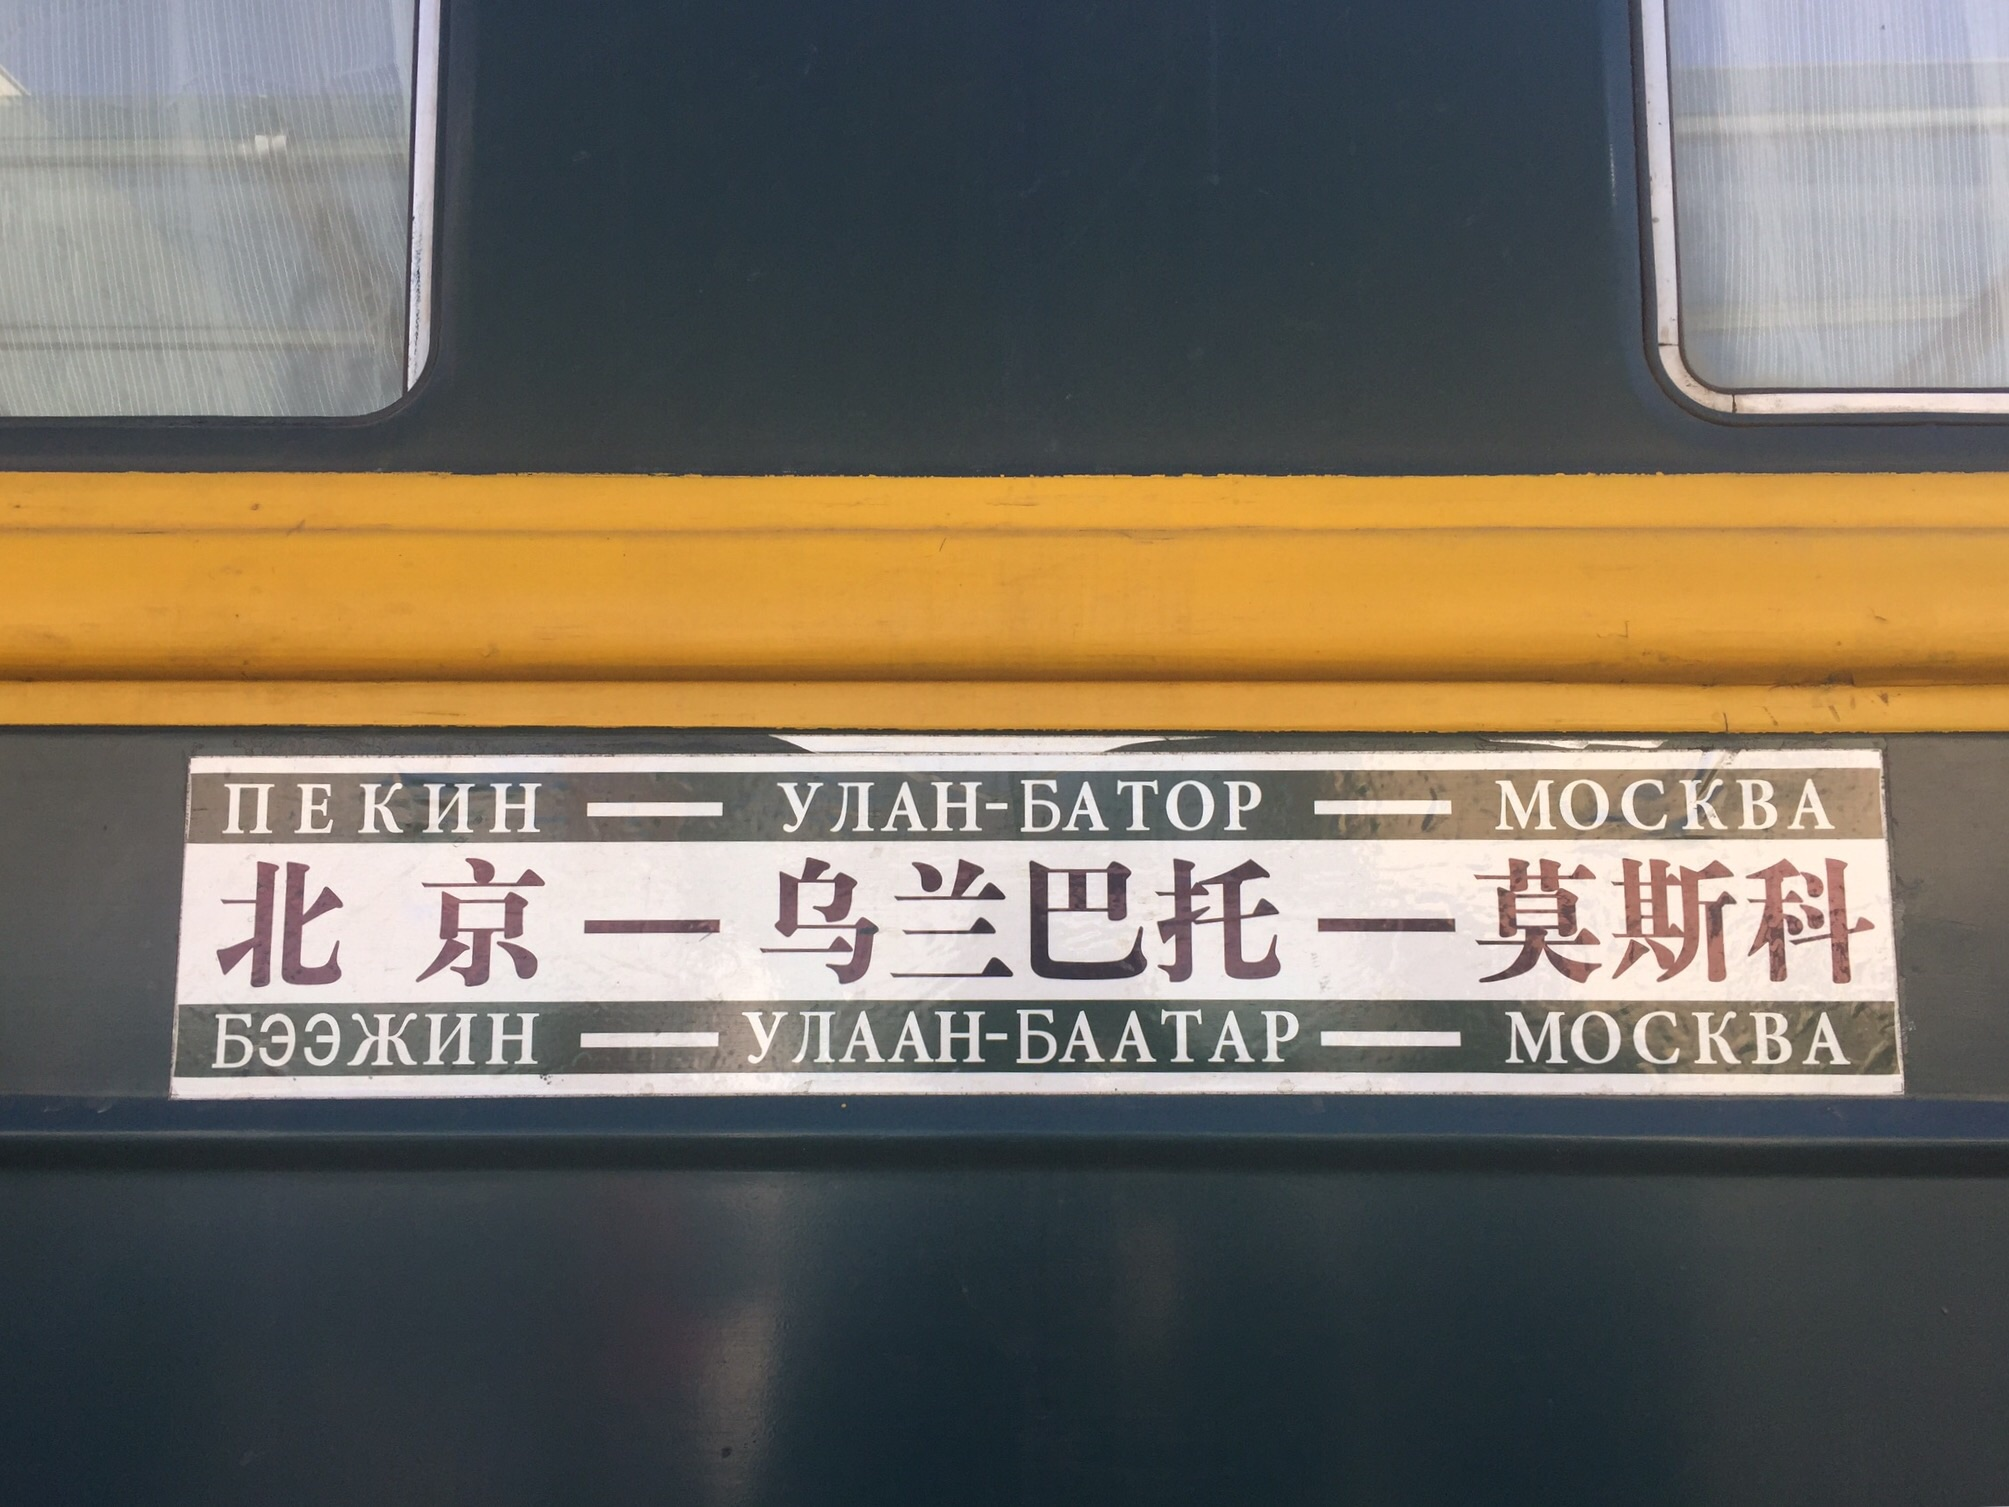 Where have we been, where are we going? The sign on the side of the train. Beijing --> Ulaanbaatar --> Moscow.